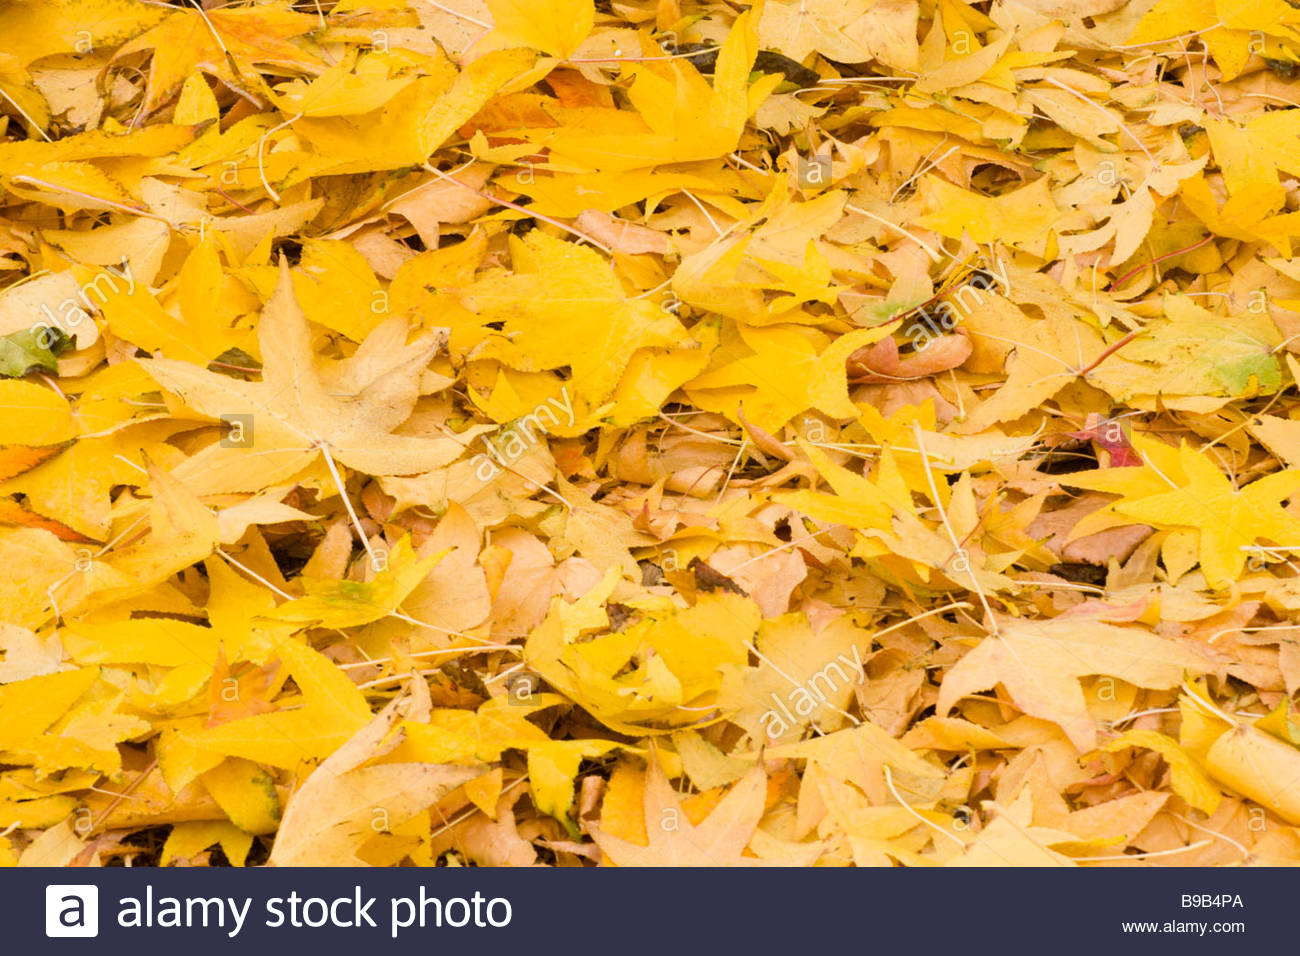 Fallen Liquid Amber Autumn Leaves Glendora California - Stock Image